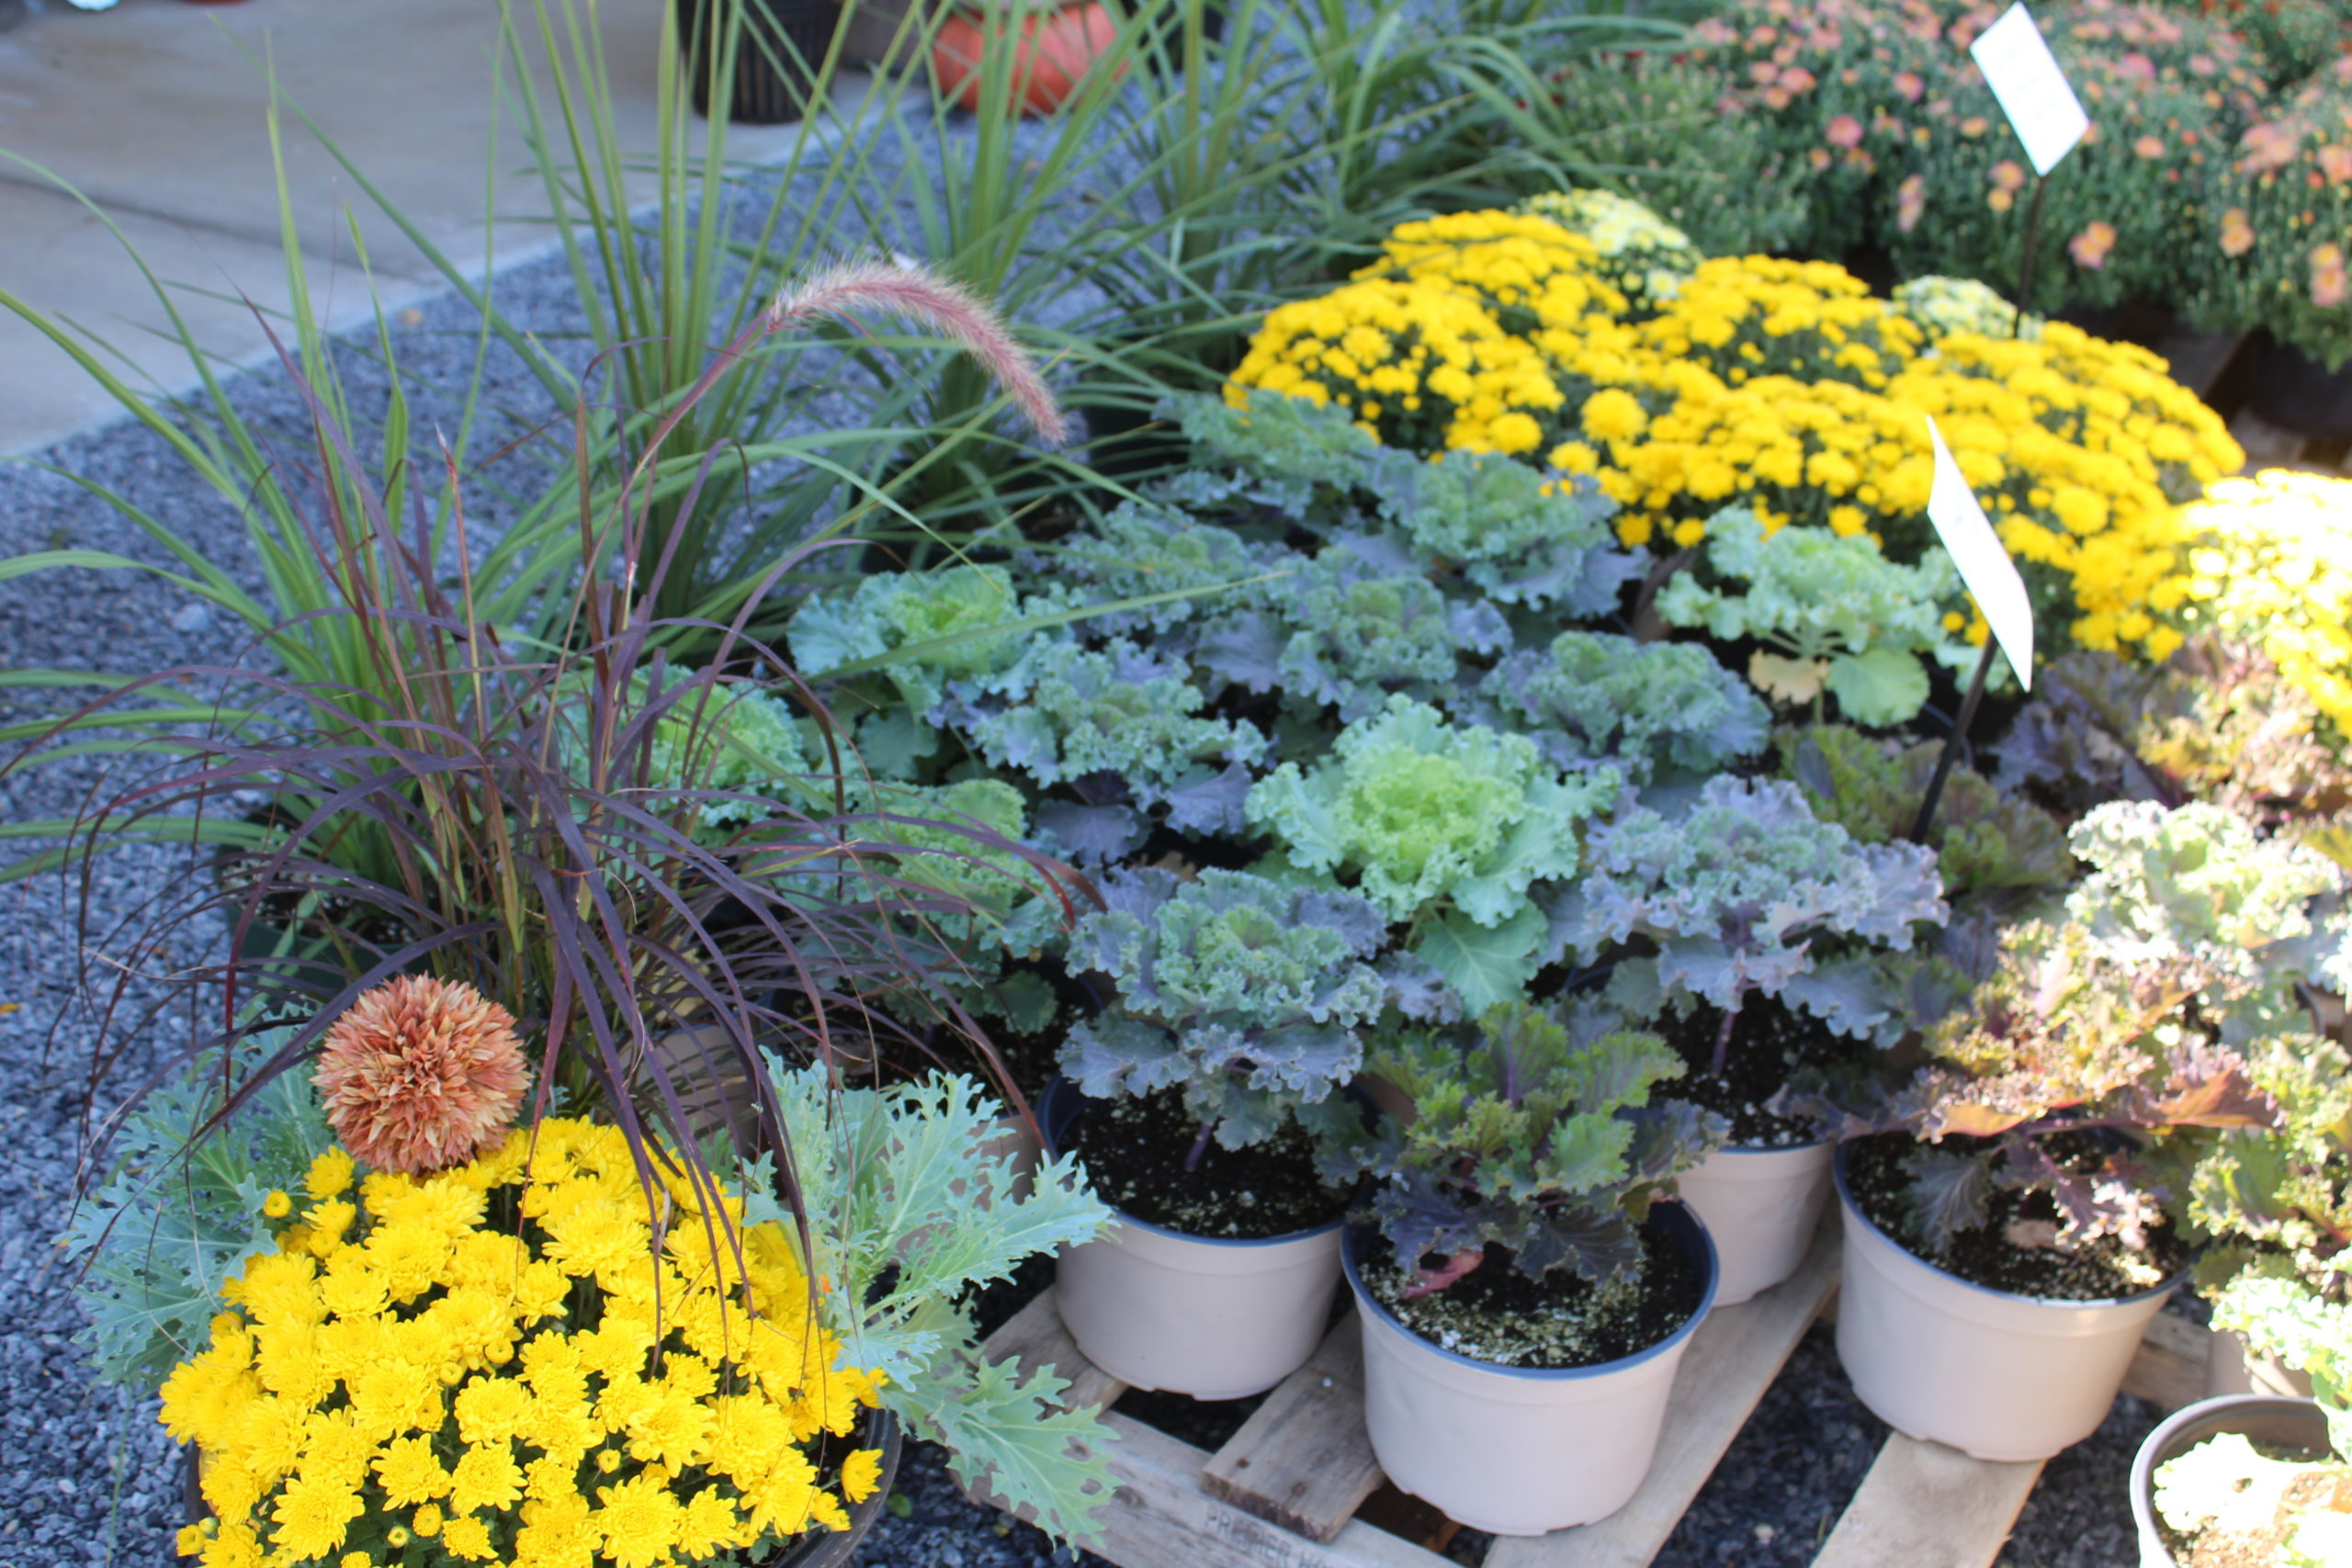 Long Lane Greenhouse Locally owned and operated spring summer annuals perennials tomato plants, heirloom varieties vibrant green ferns tropical plants lush foliage hanging baskets potted plants potted bedding plants flower beds vegetable starts deck home, garden, and landscape poinsettias Christmas varieties mums & fall harvest varieties